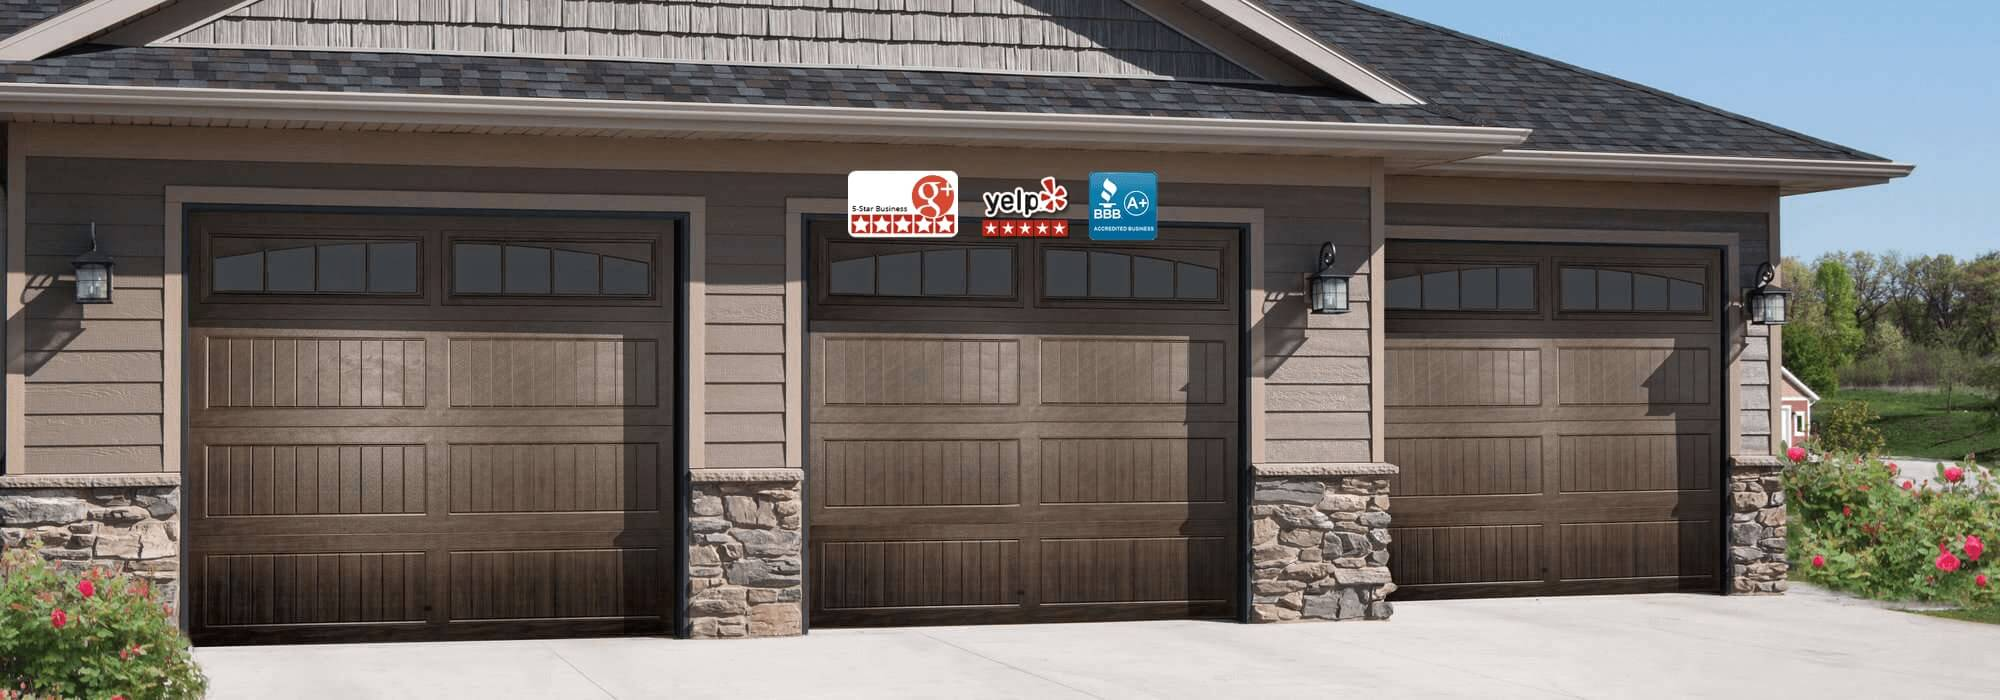 Garage Door Repair Denver Co Repair And Service For